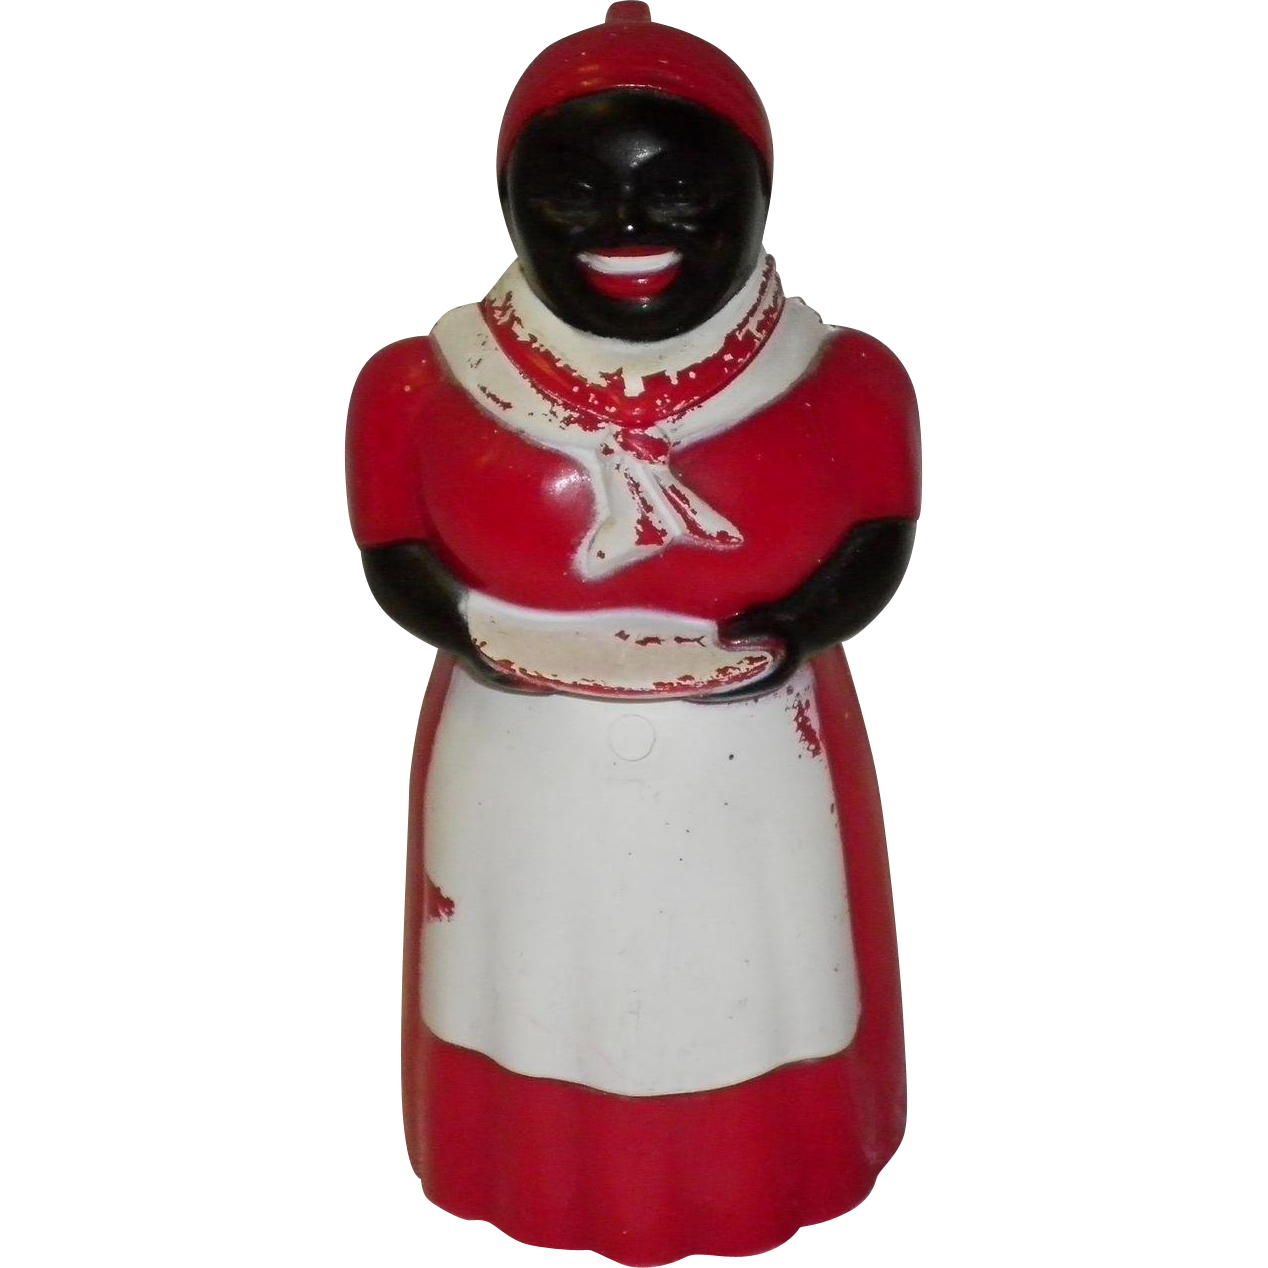 Black Americana Aunt Jemima Syrup Dispenser F & F Mold & Die Ohio USA